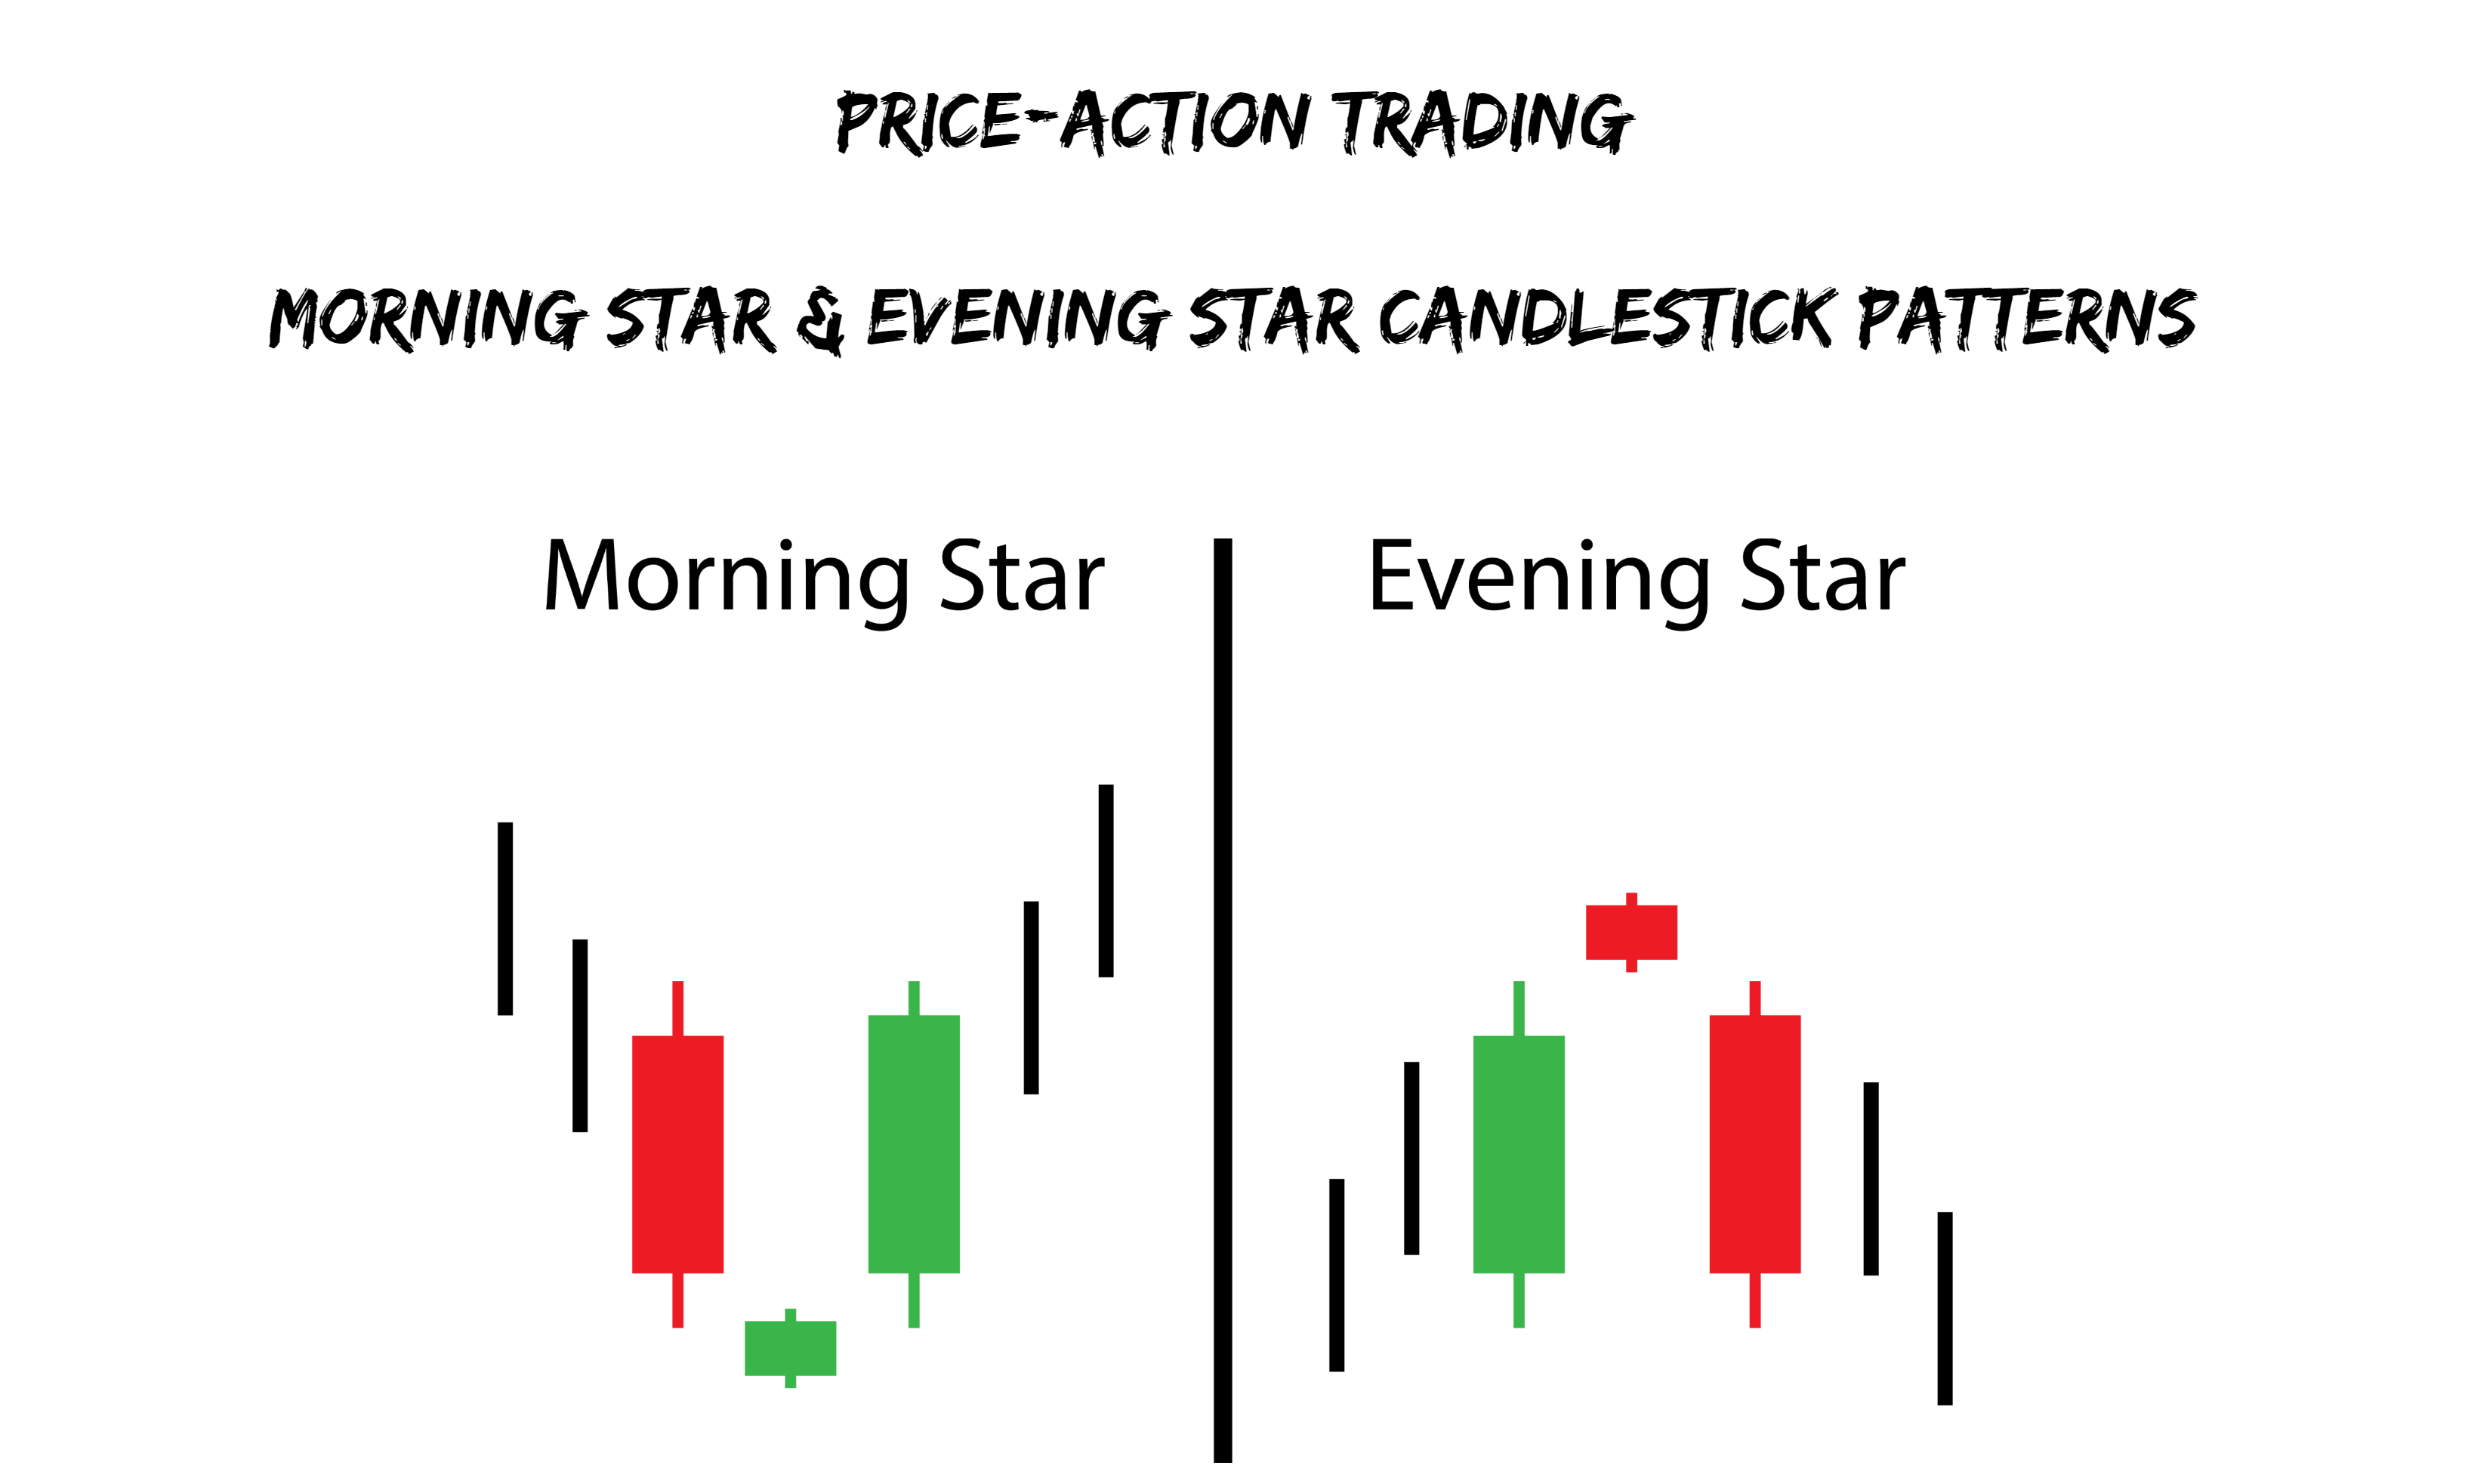 Morning star candle